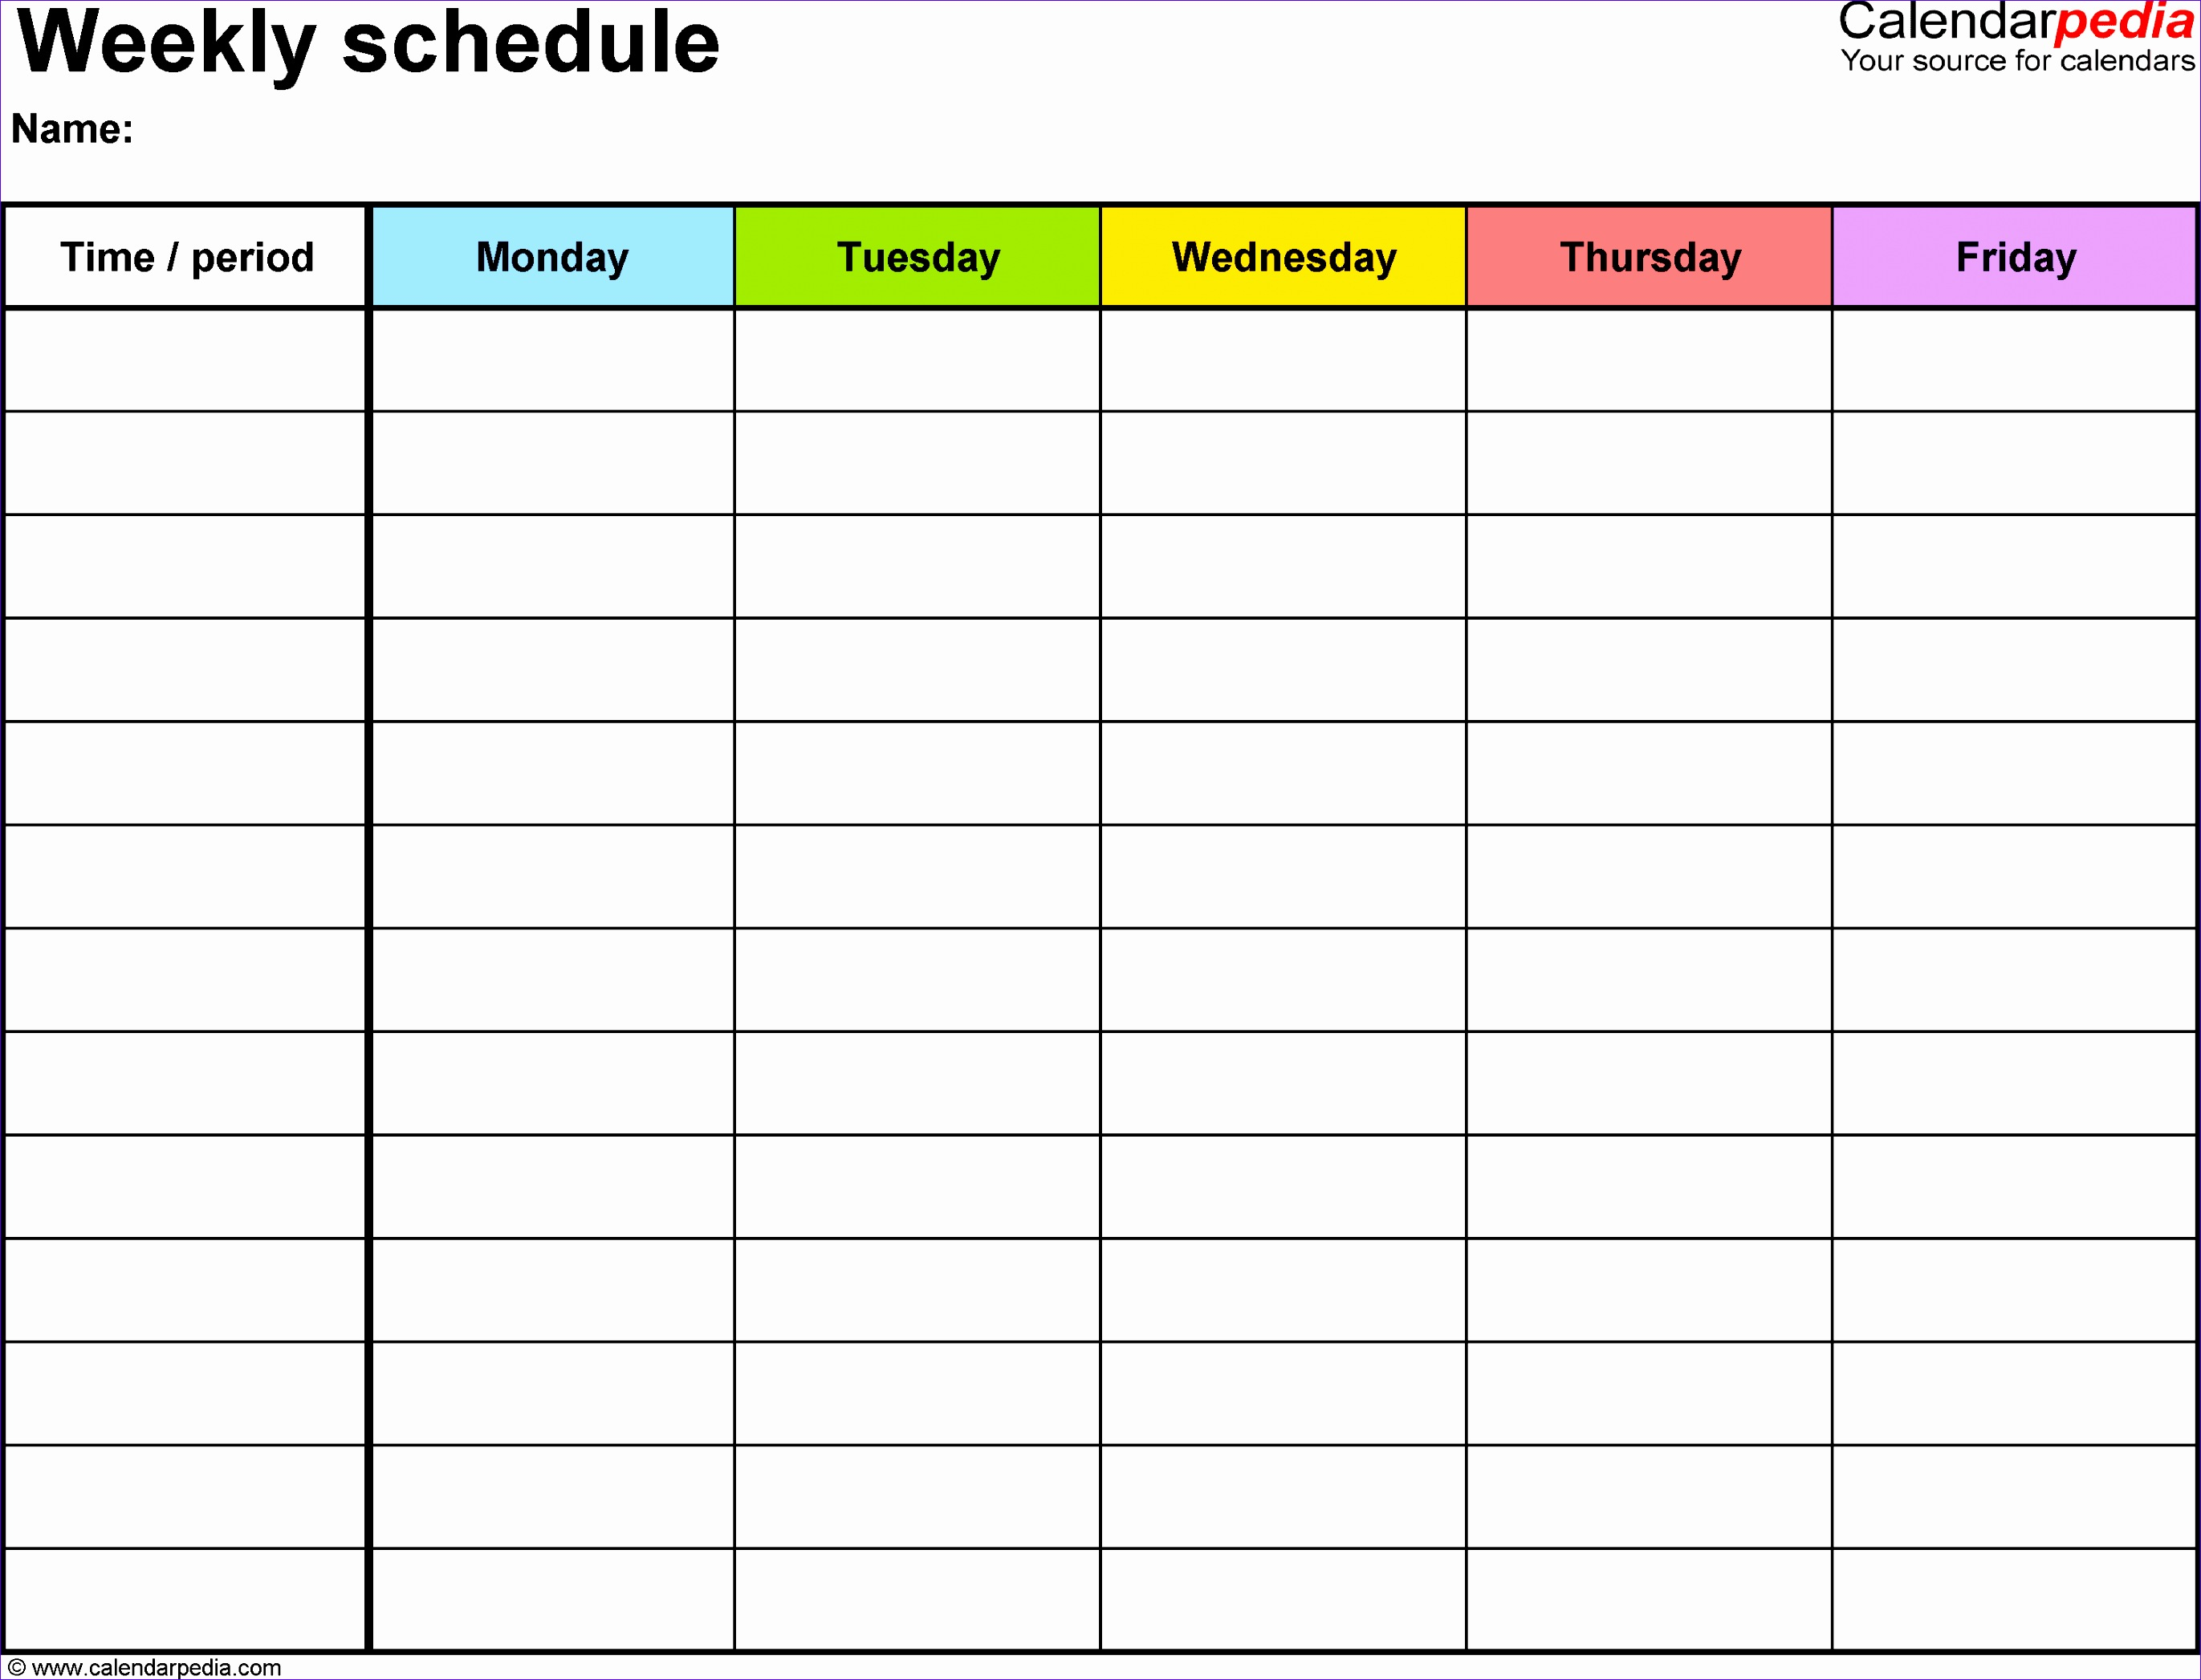 Hourly Gantt Chart Excel Template Borxf New 5 Day Calendar Template Excel Pacq